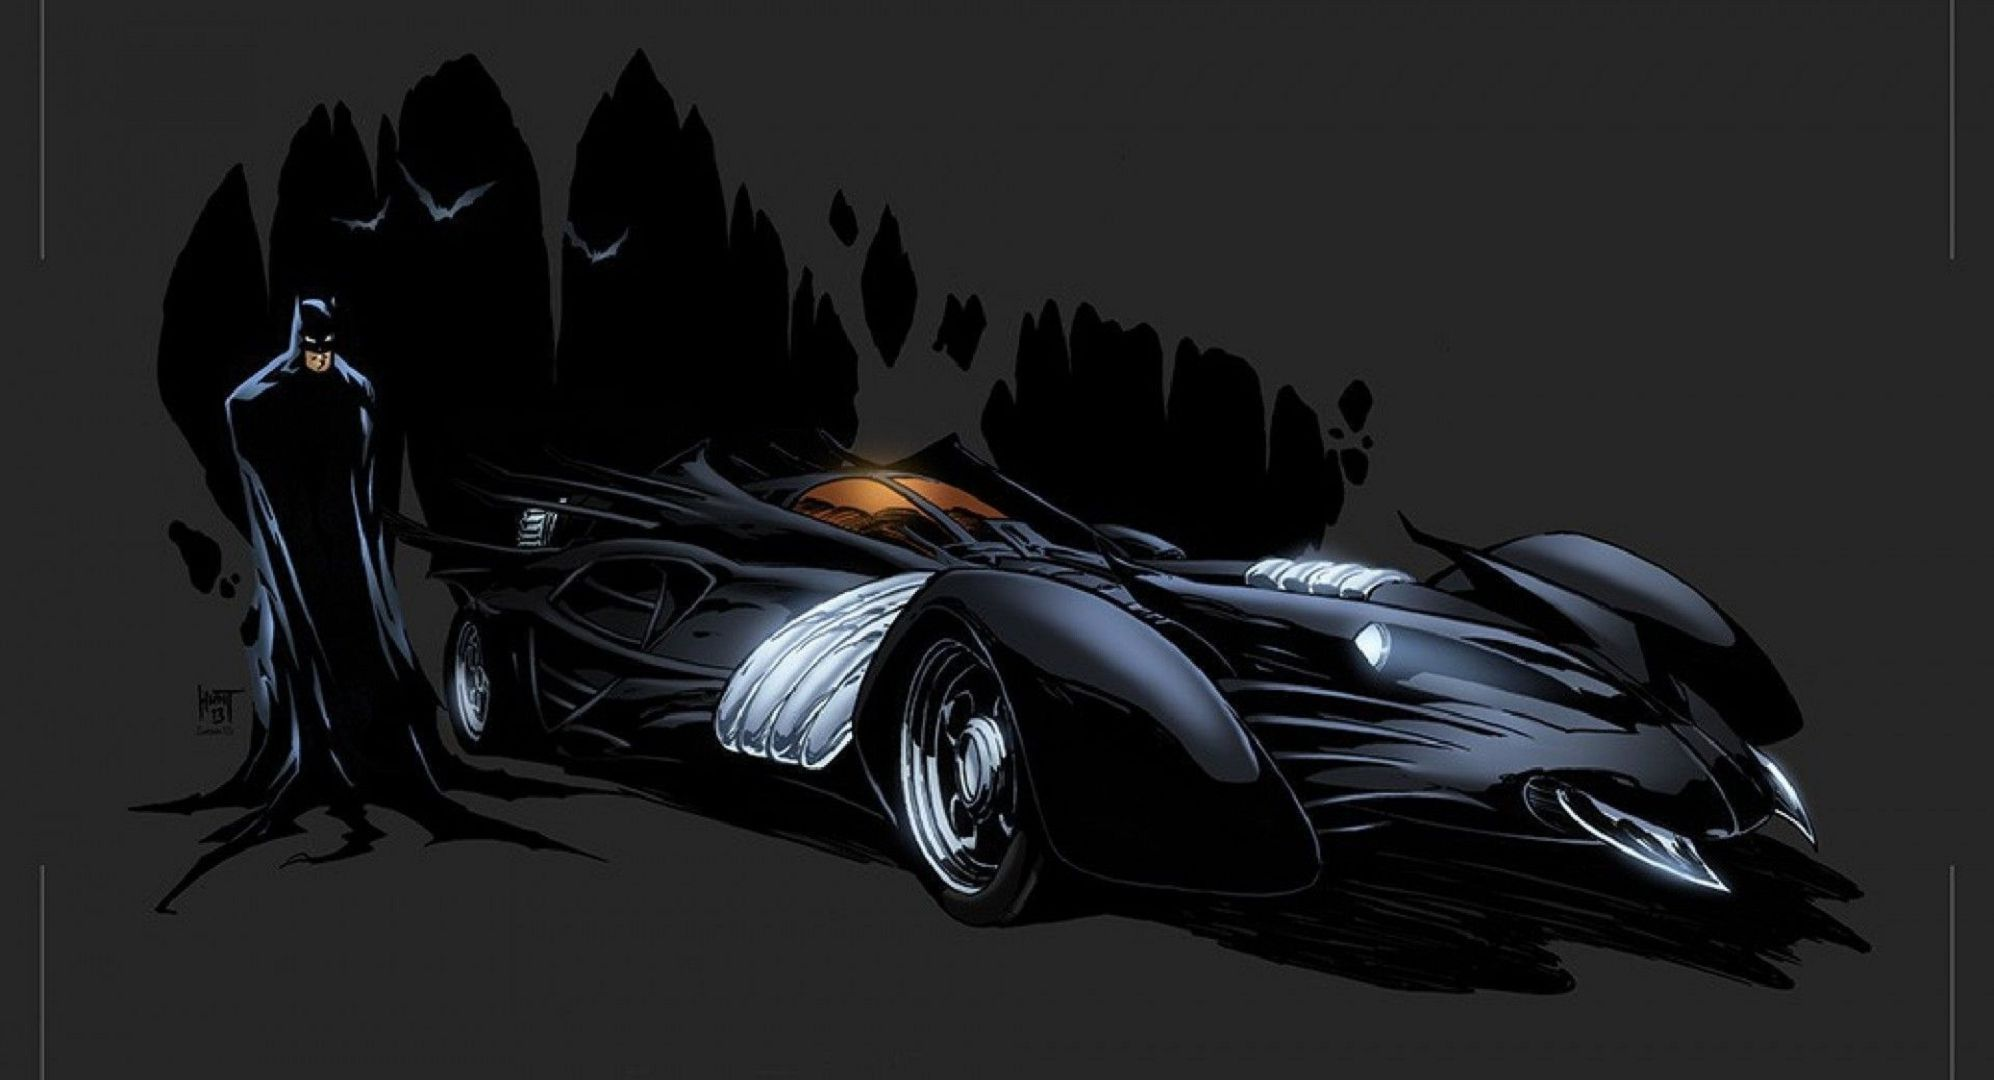 Batmobile HD Desktop